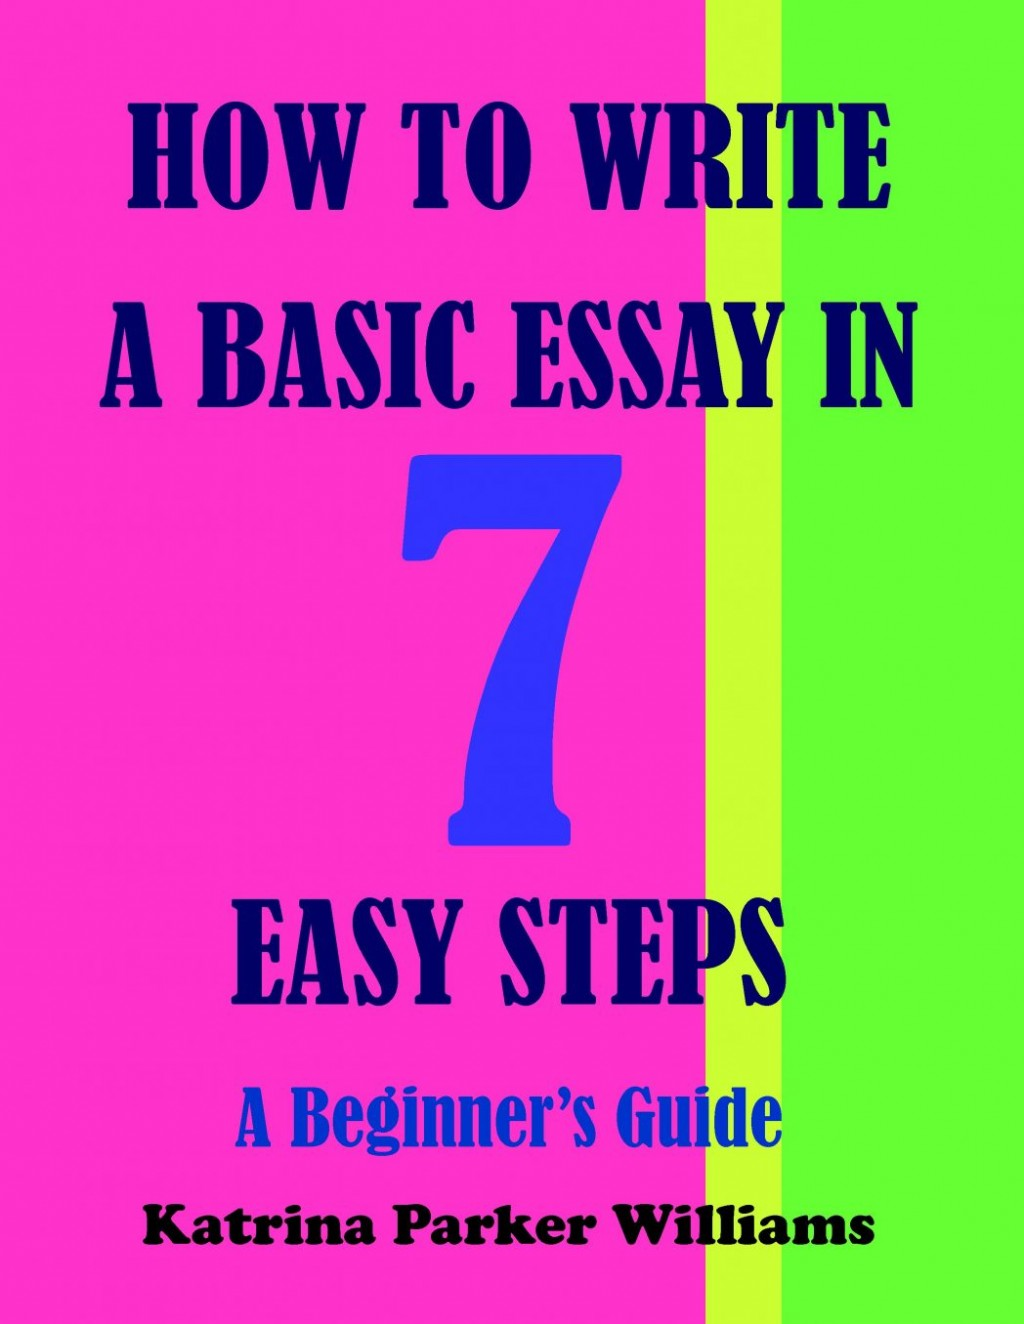 014 Essay Help Easy Books To Improve Your Writing How Write Basic In Seven With 1048x1356 An About Book Marvelous A Analytical Comparing Two You Haven't Read Argumentative Large